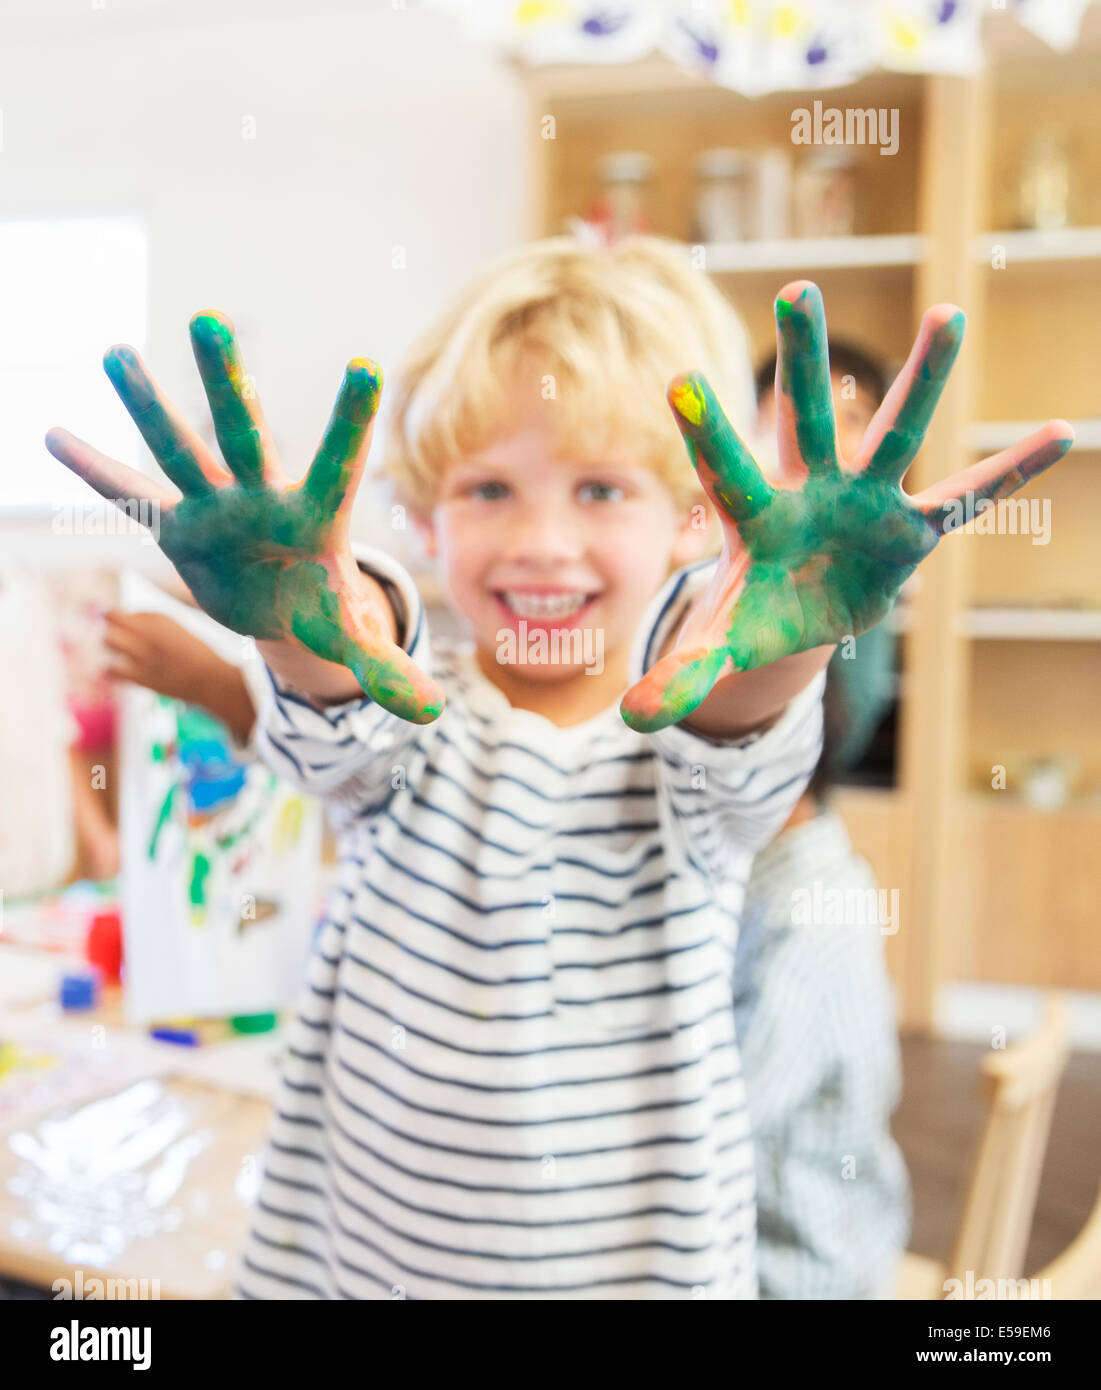 Student showing off messy hands in classroom Stock Photo